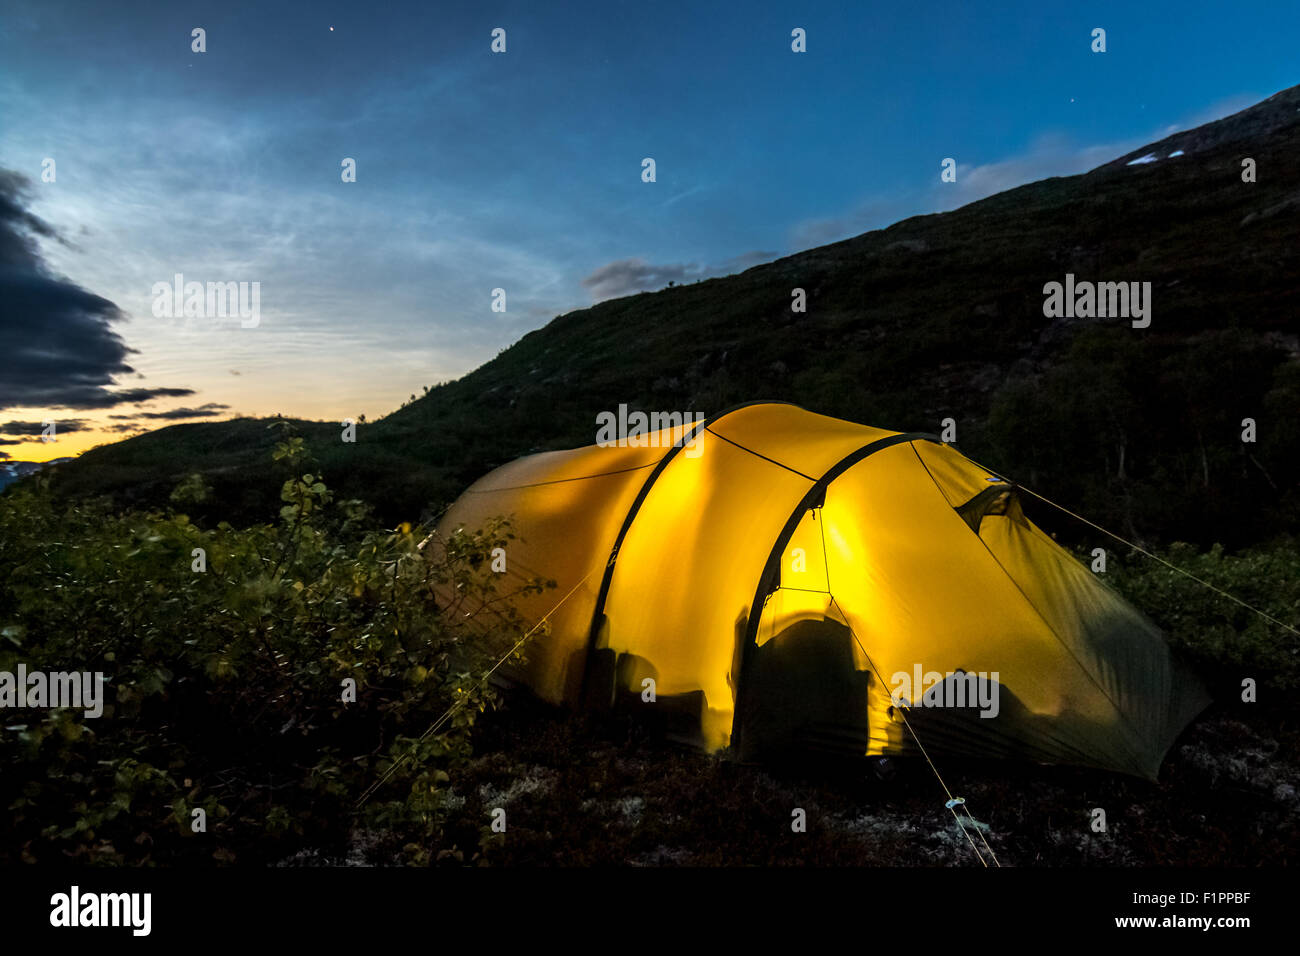 Tent in the wilderness of Norway. - Stock Image